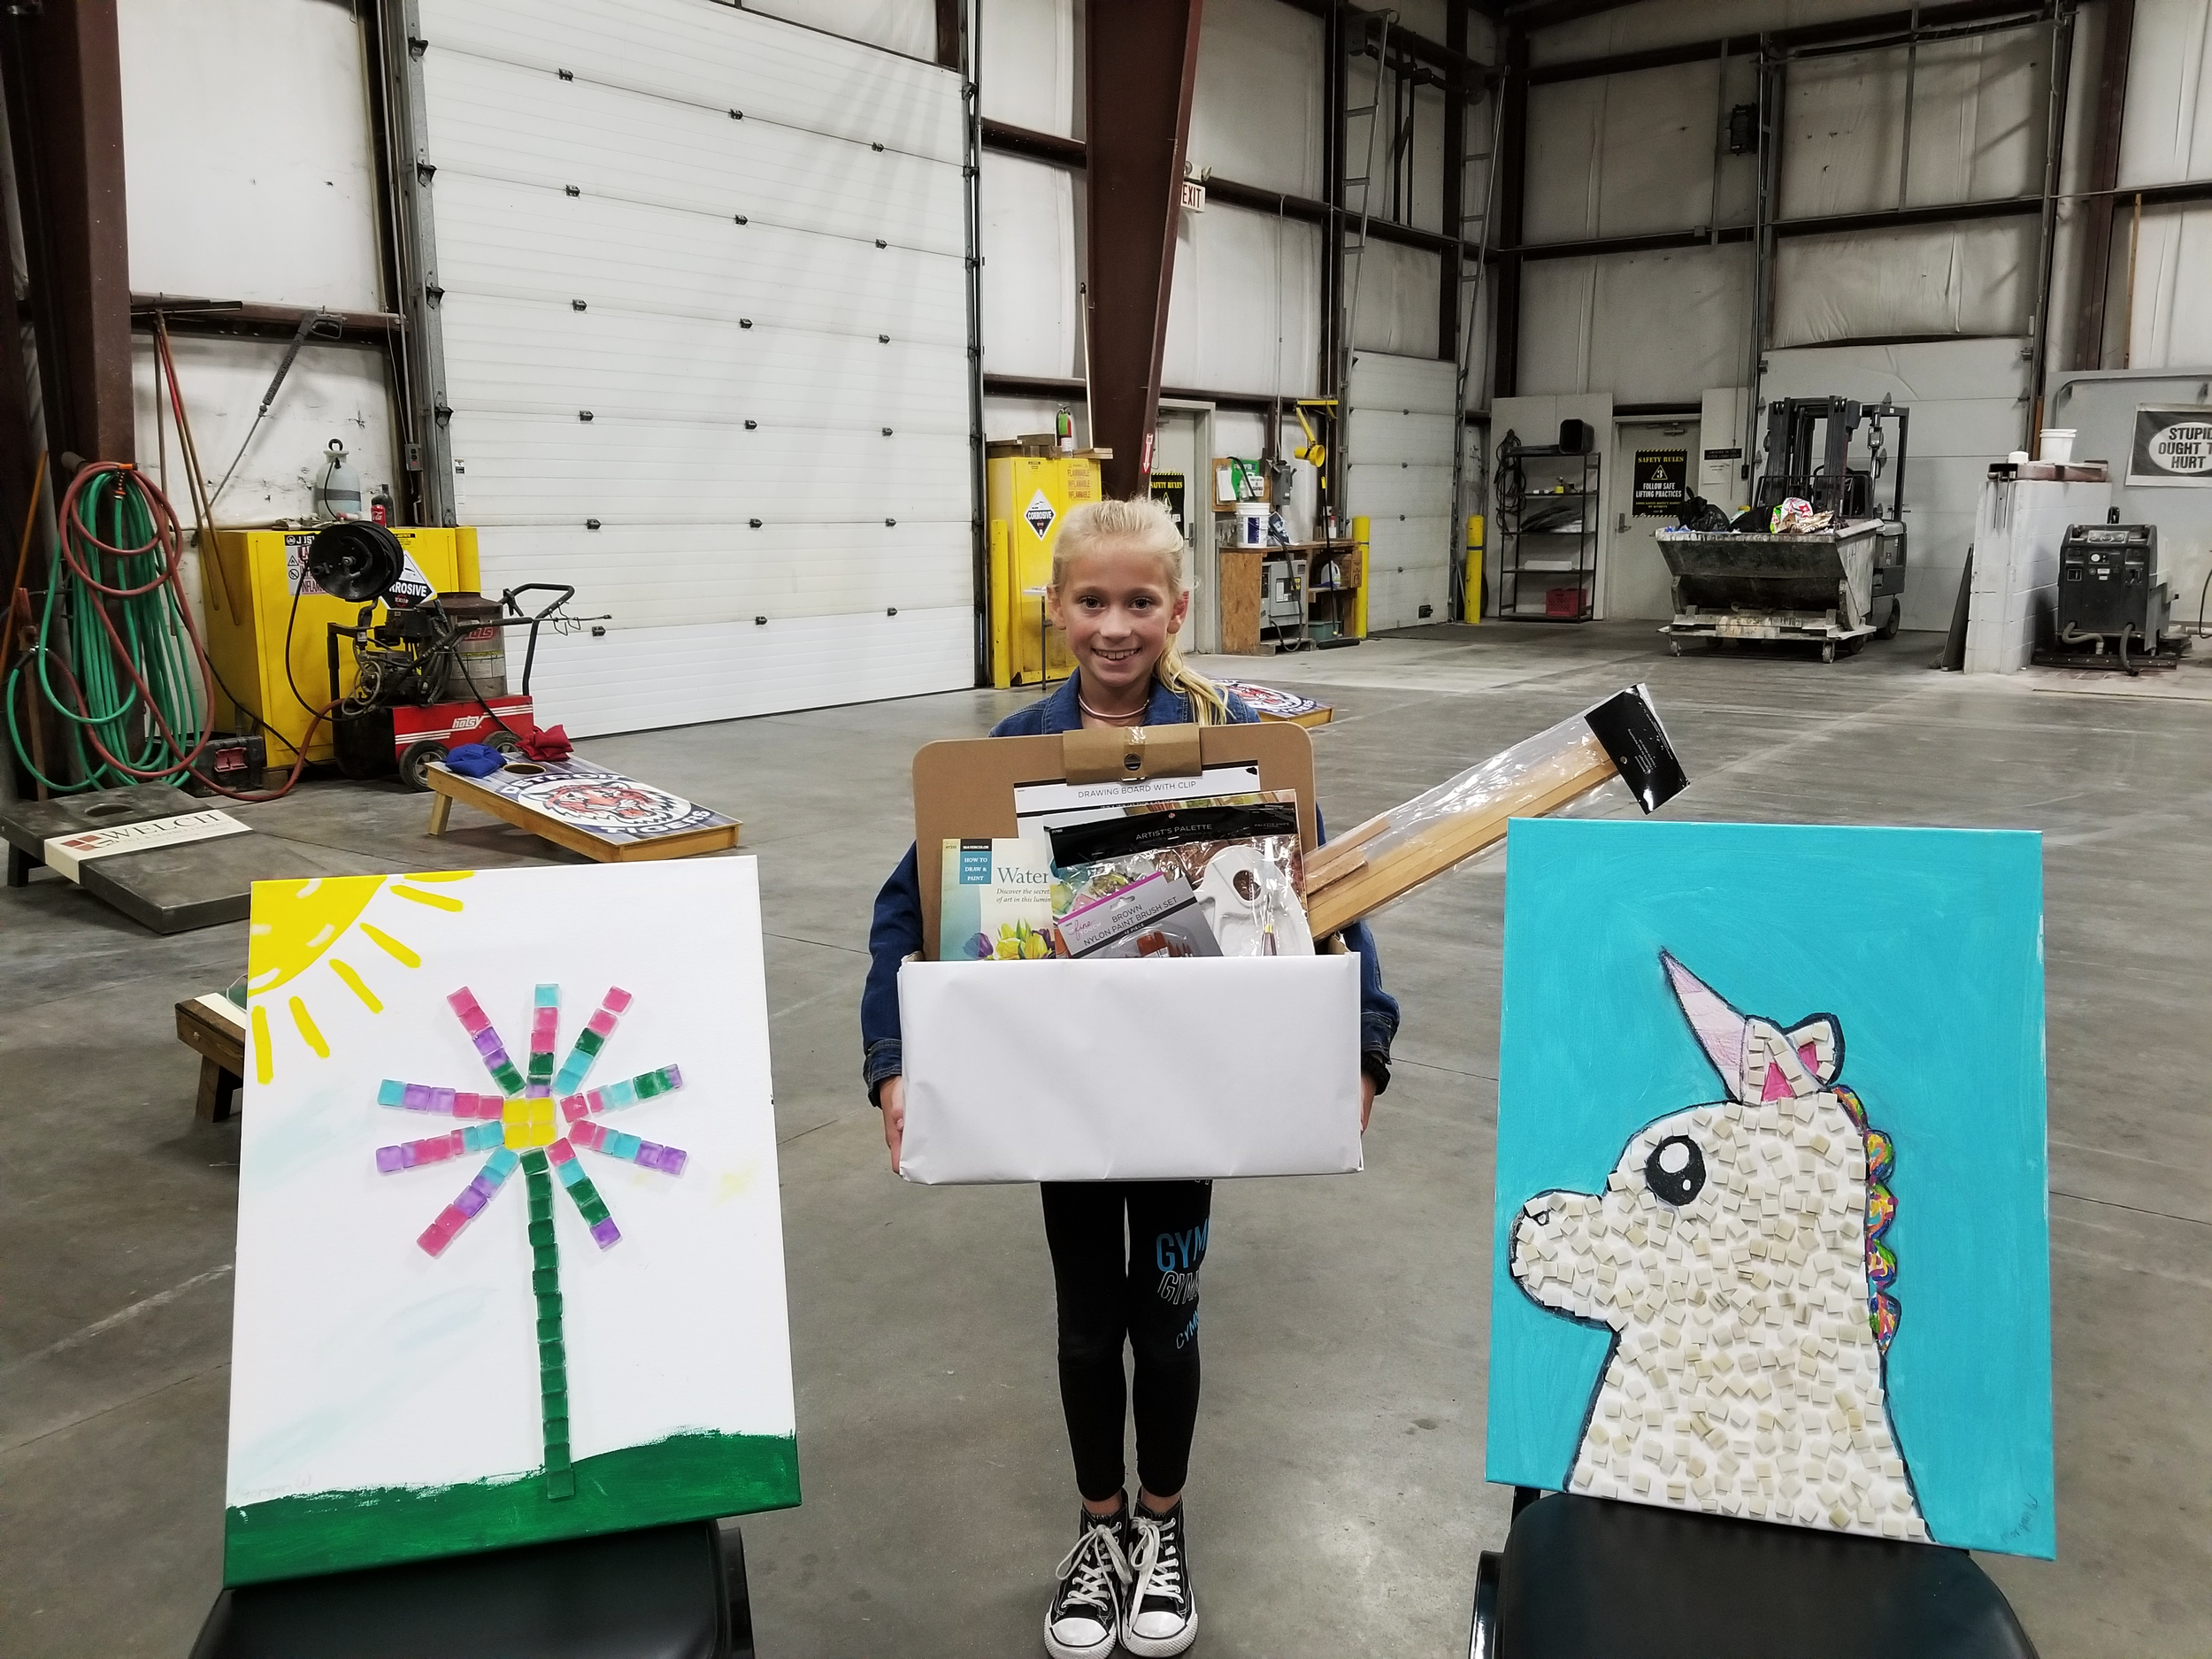 The winner of our art contest with her submissions and her prize